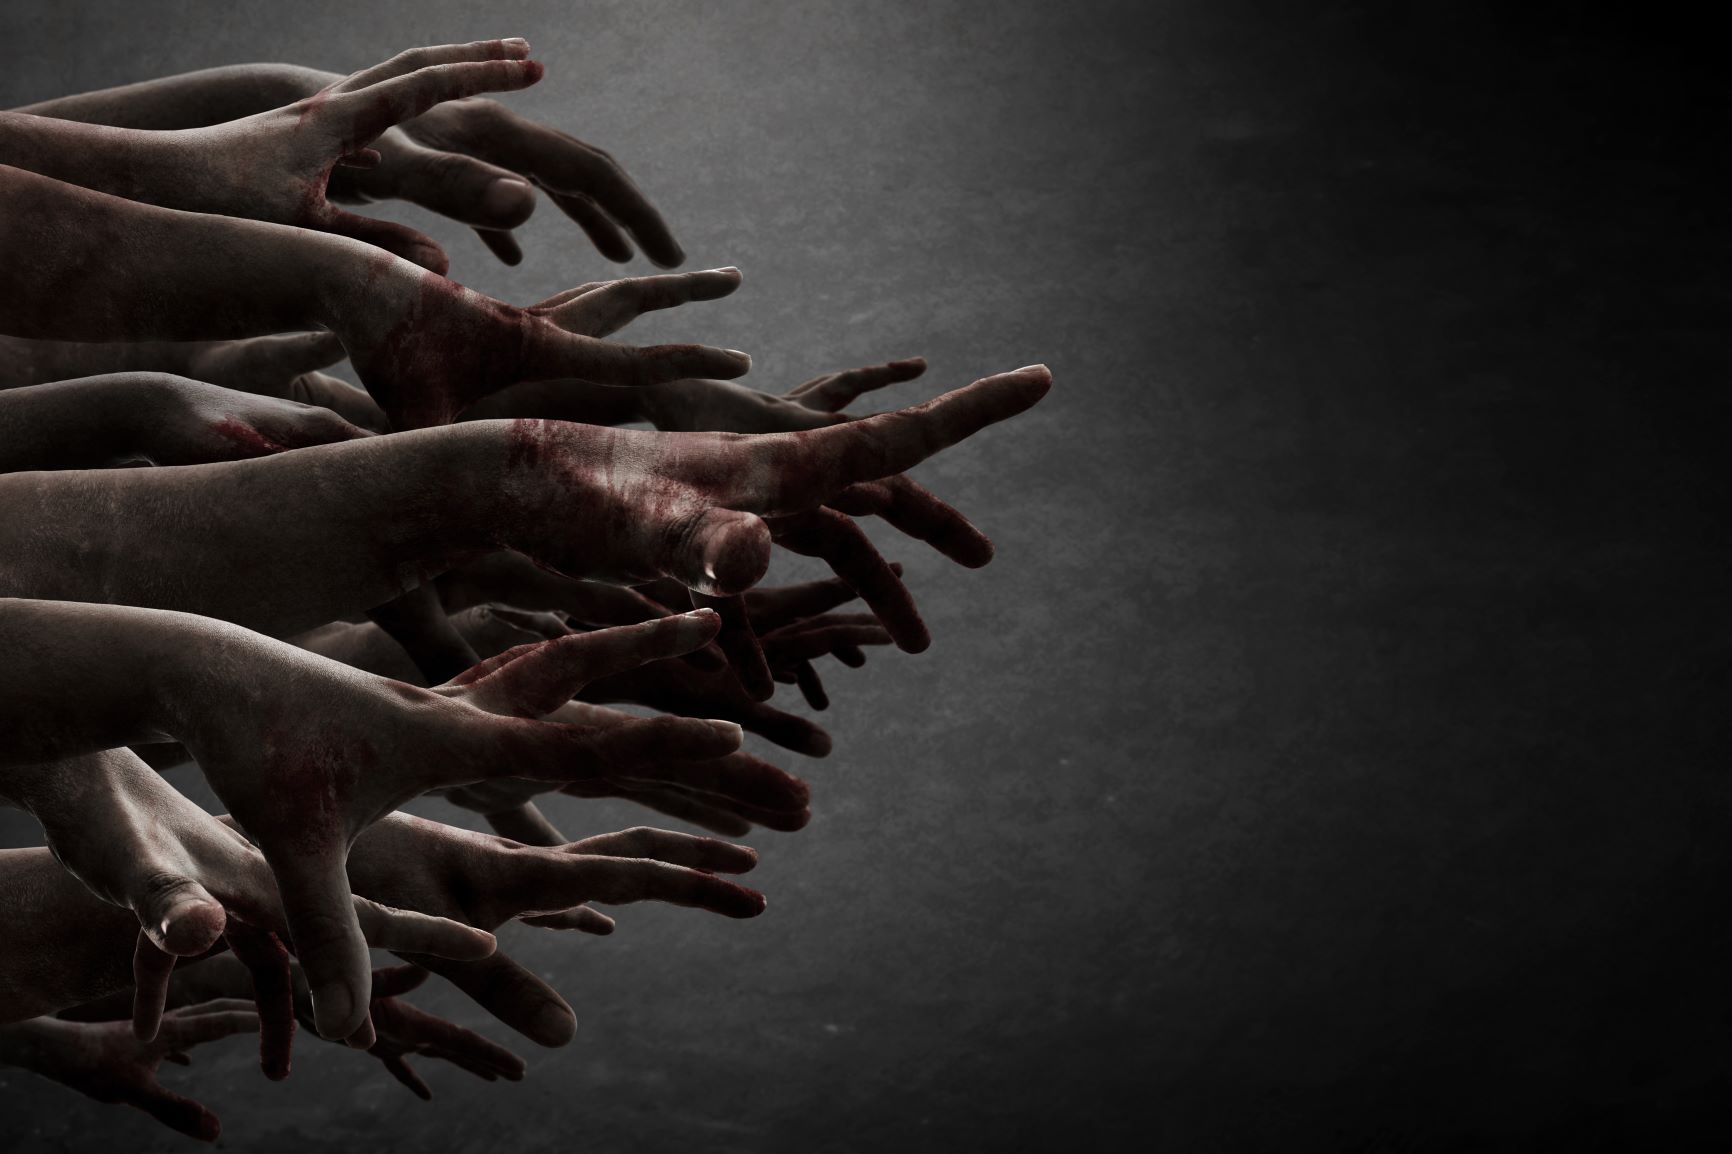 Bloody zombies arms reaching out